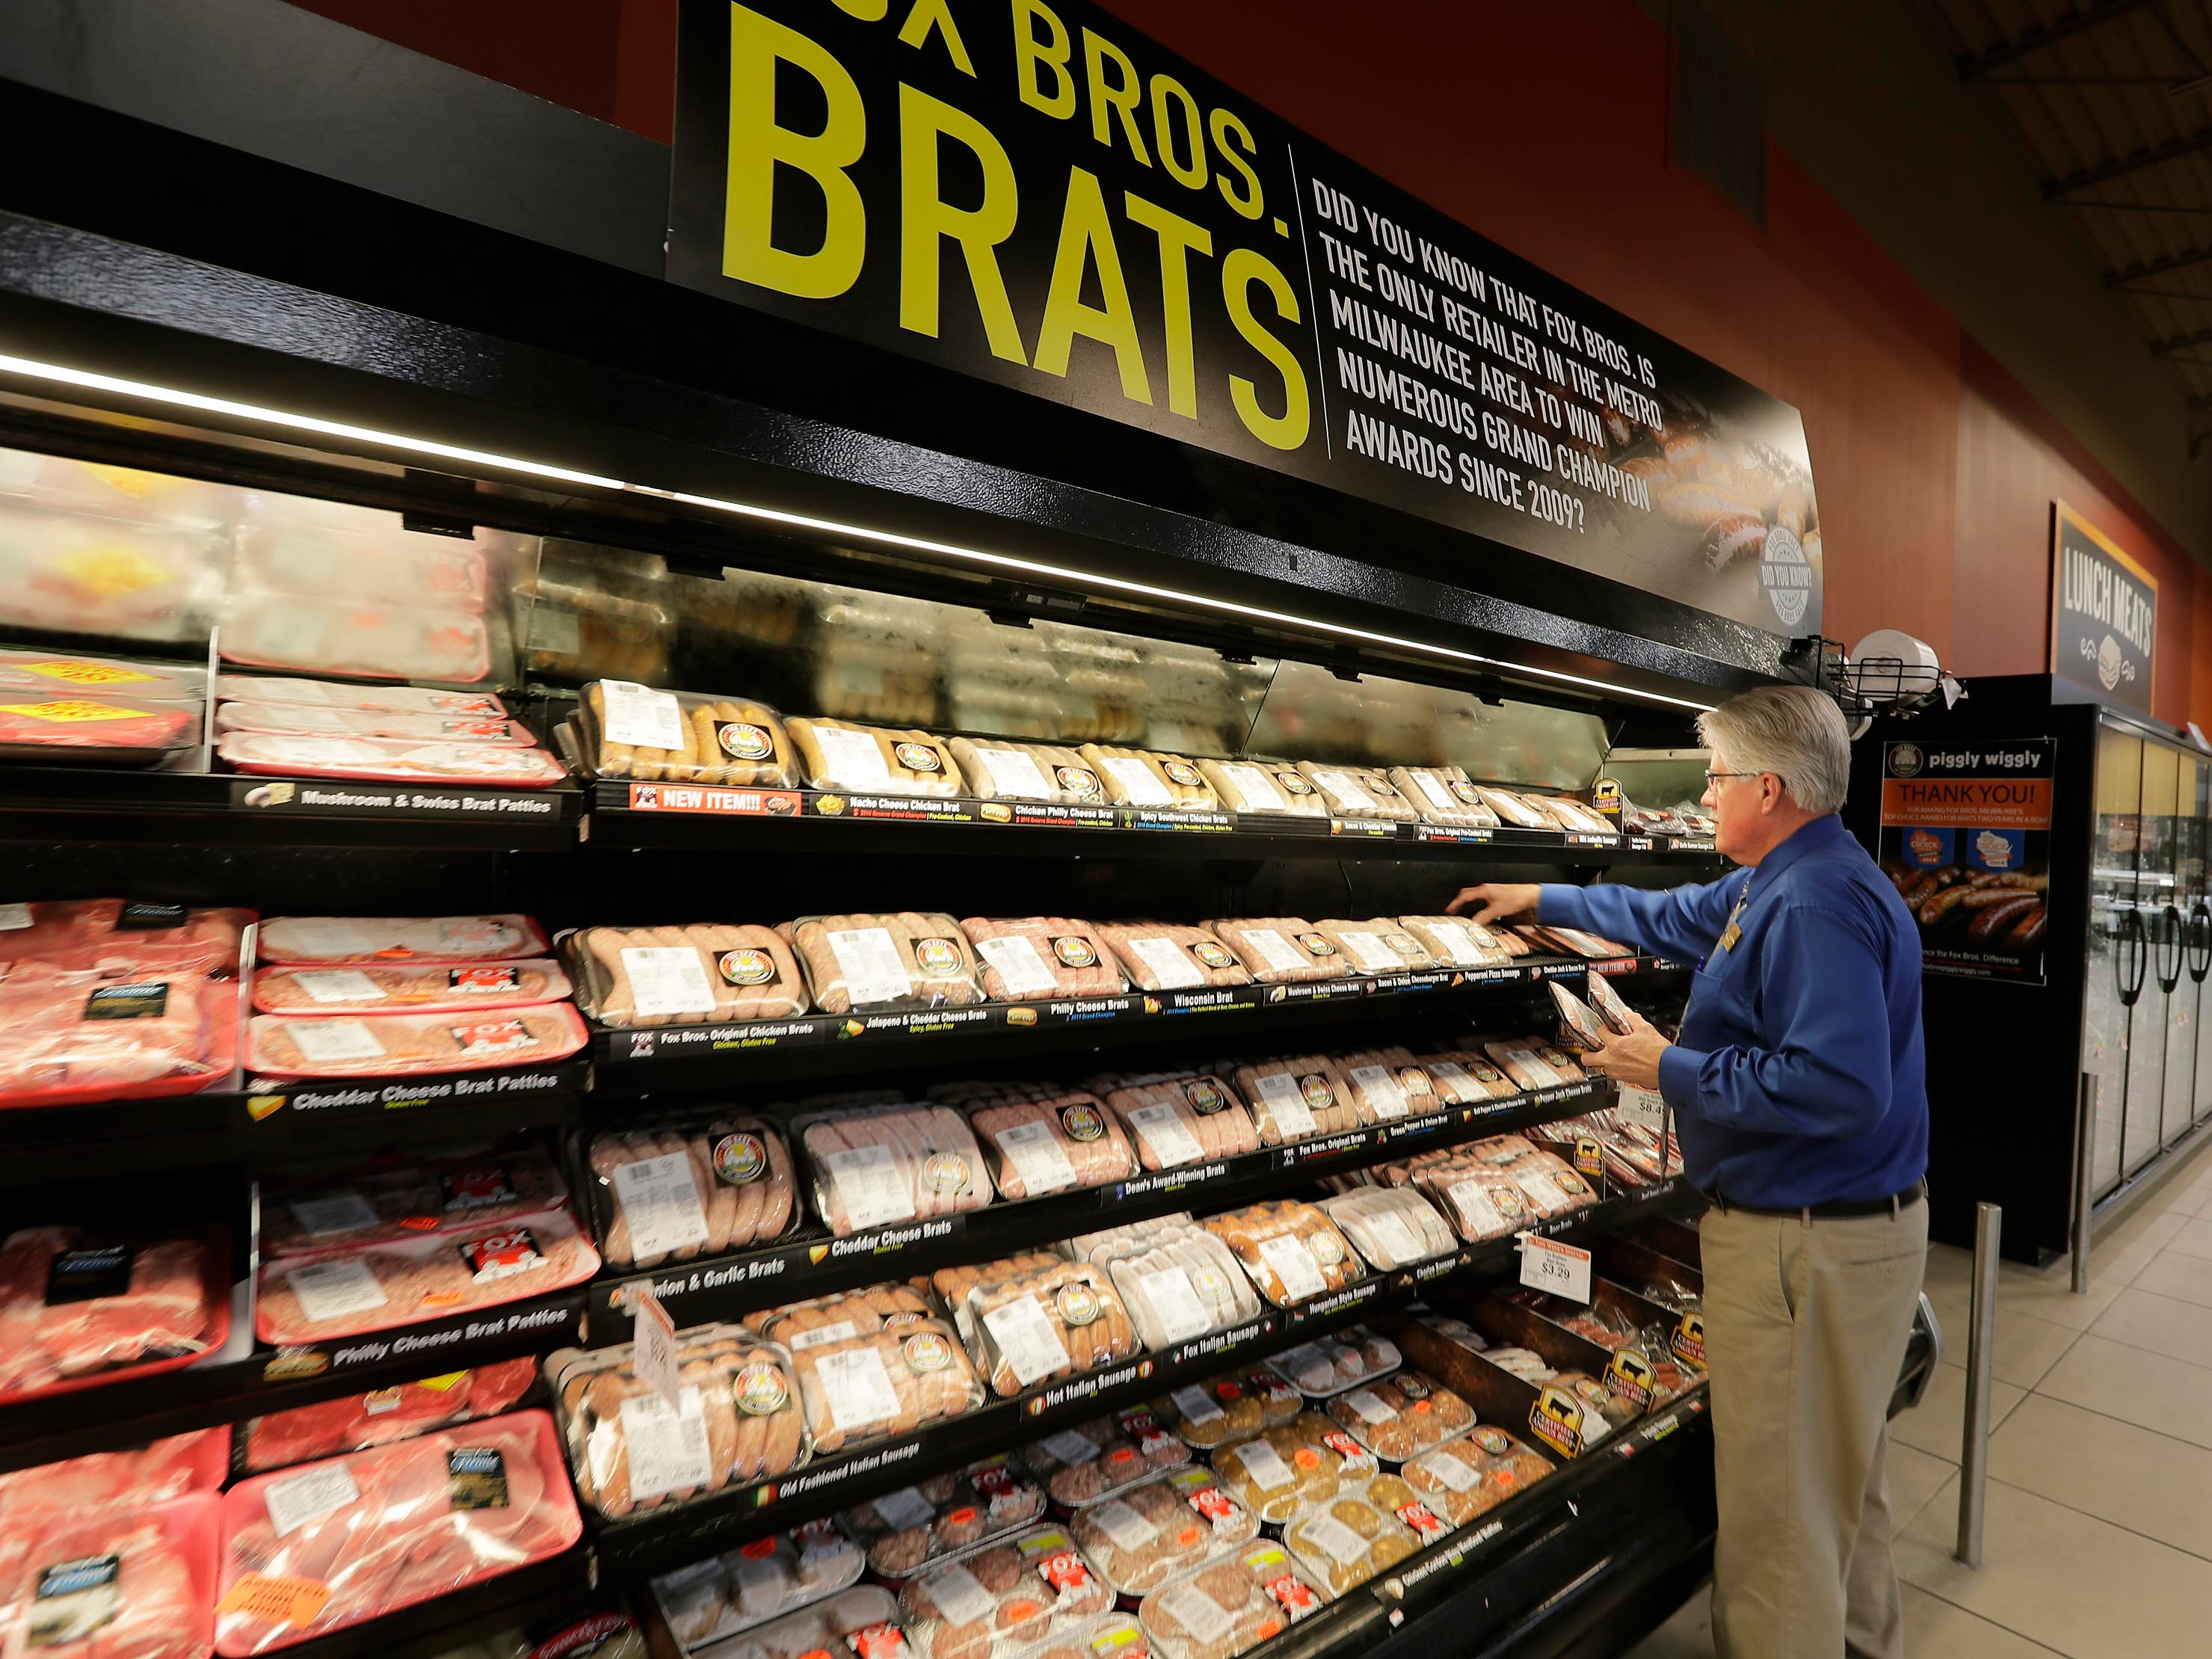 The Fox Bros. Piggly Wiggly store in Richfield features the Fox Bros. line of brats.